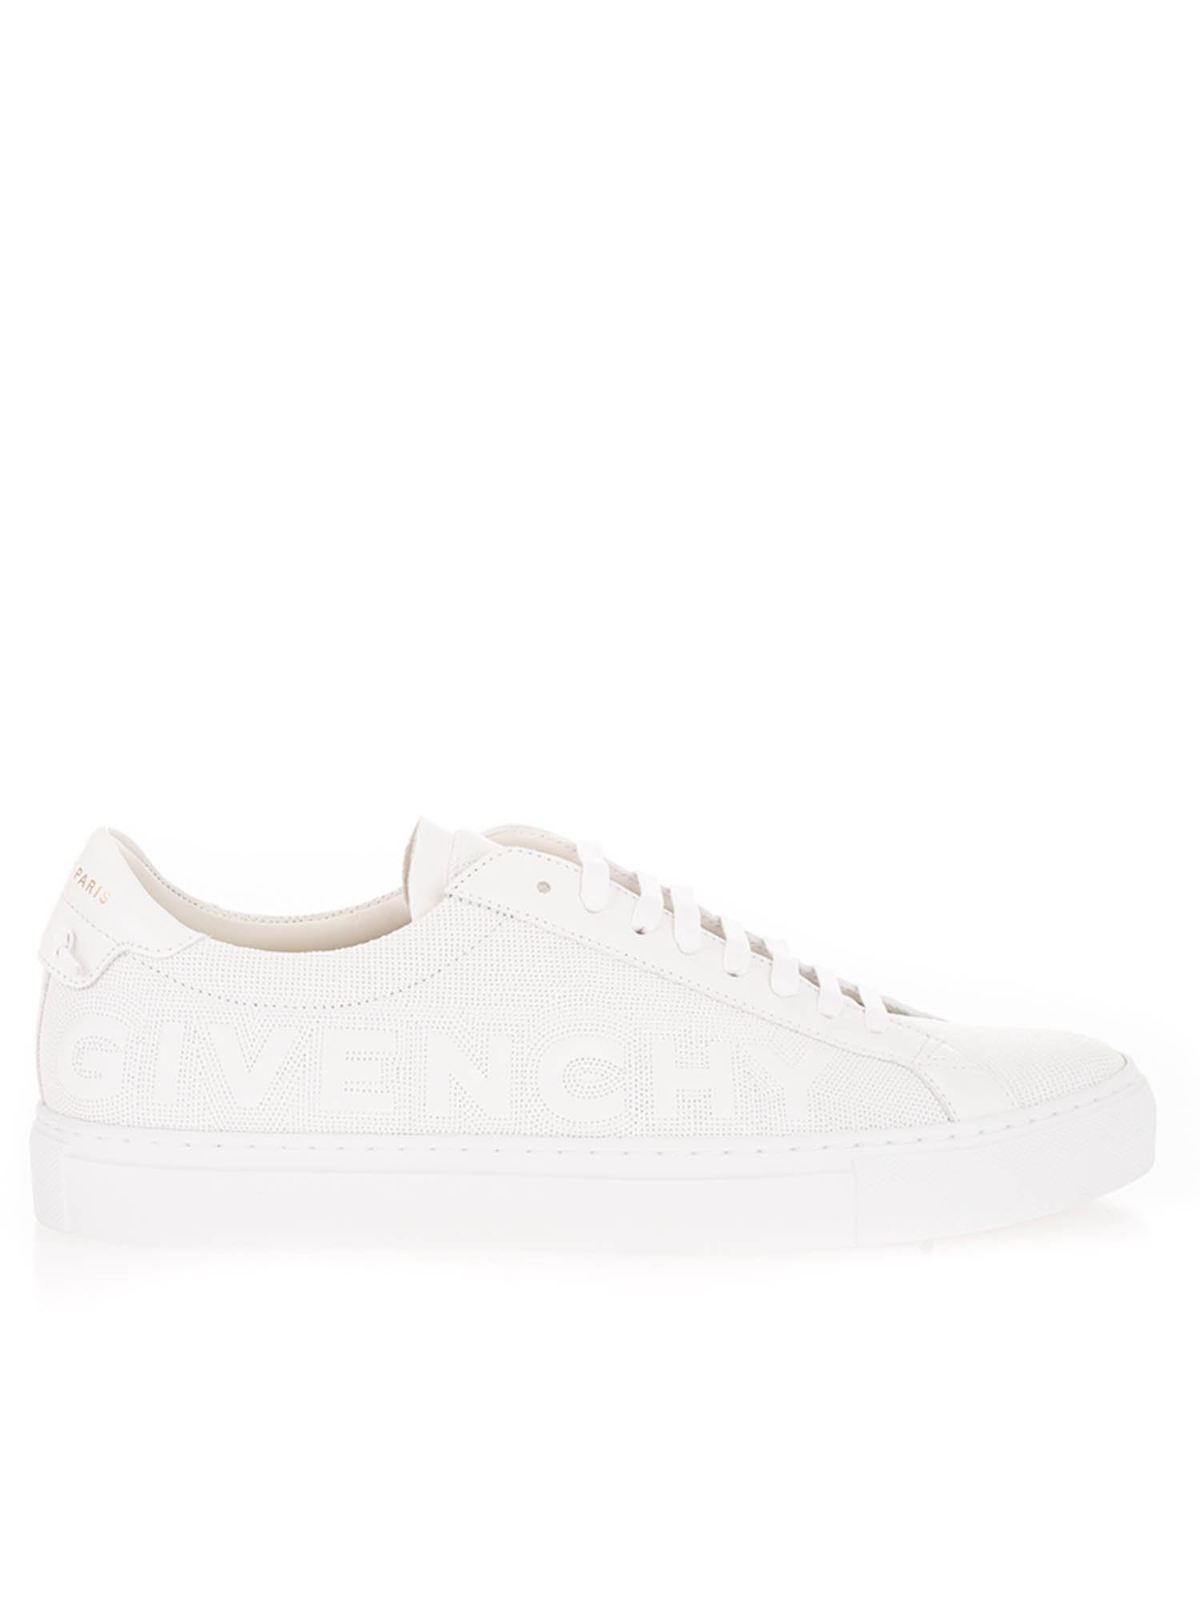 Givenchy Leathers URBAN STREET SNEAKERS IN WHITE